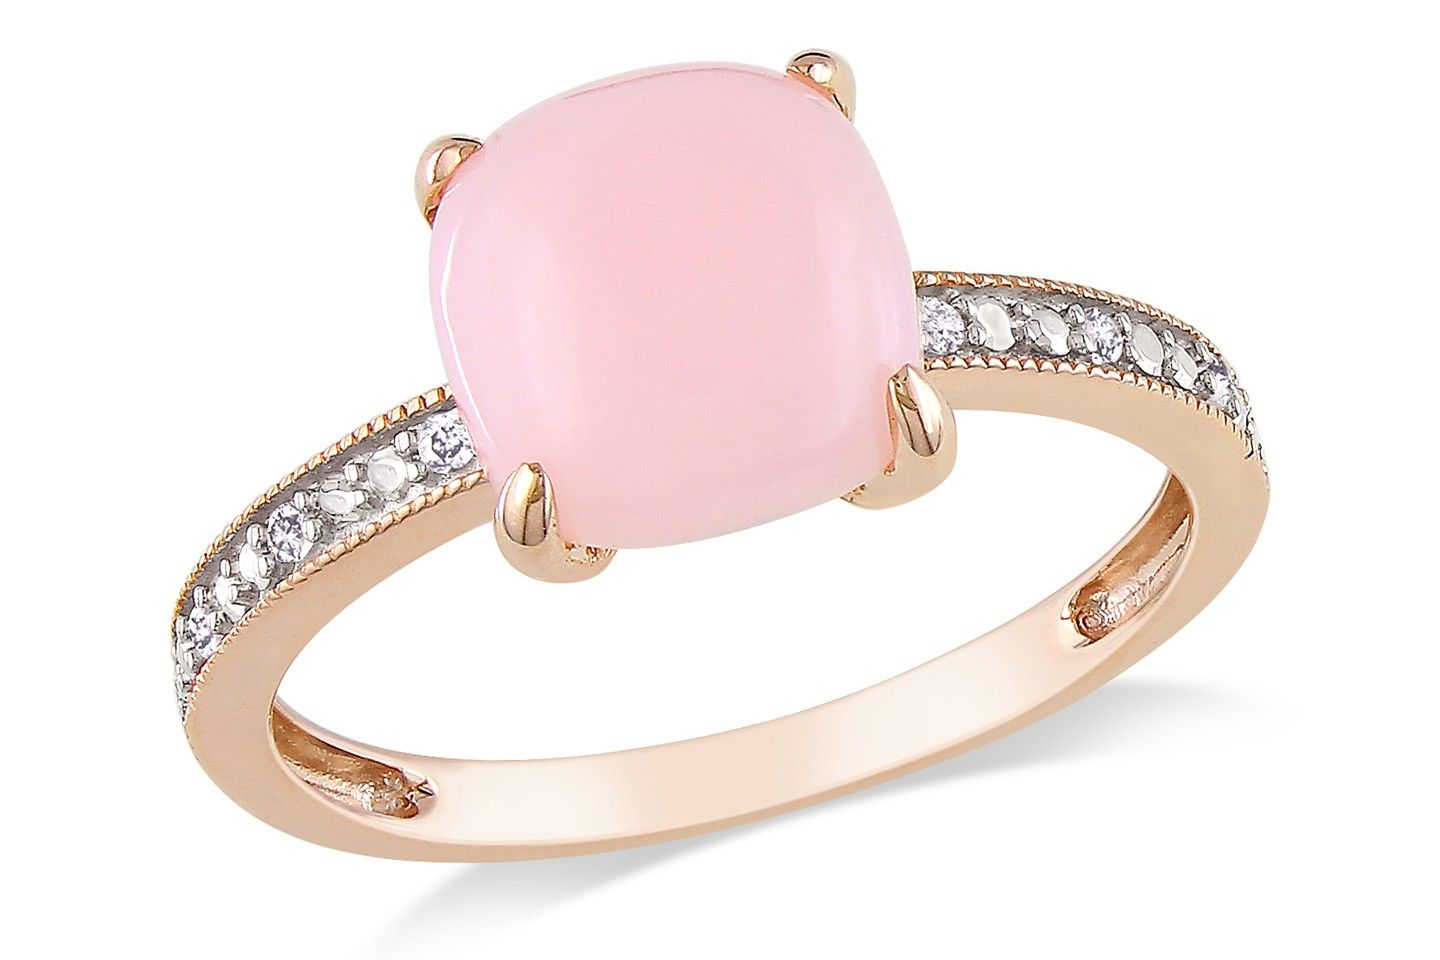 This gorgeous ring features a centered pink opal stone with dazzling ...